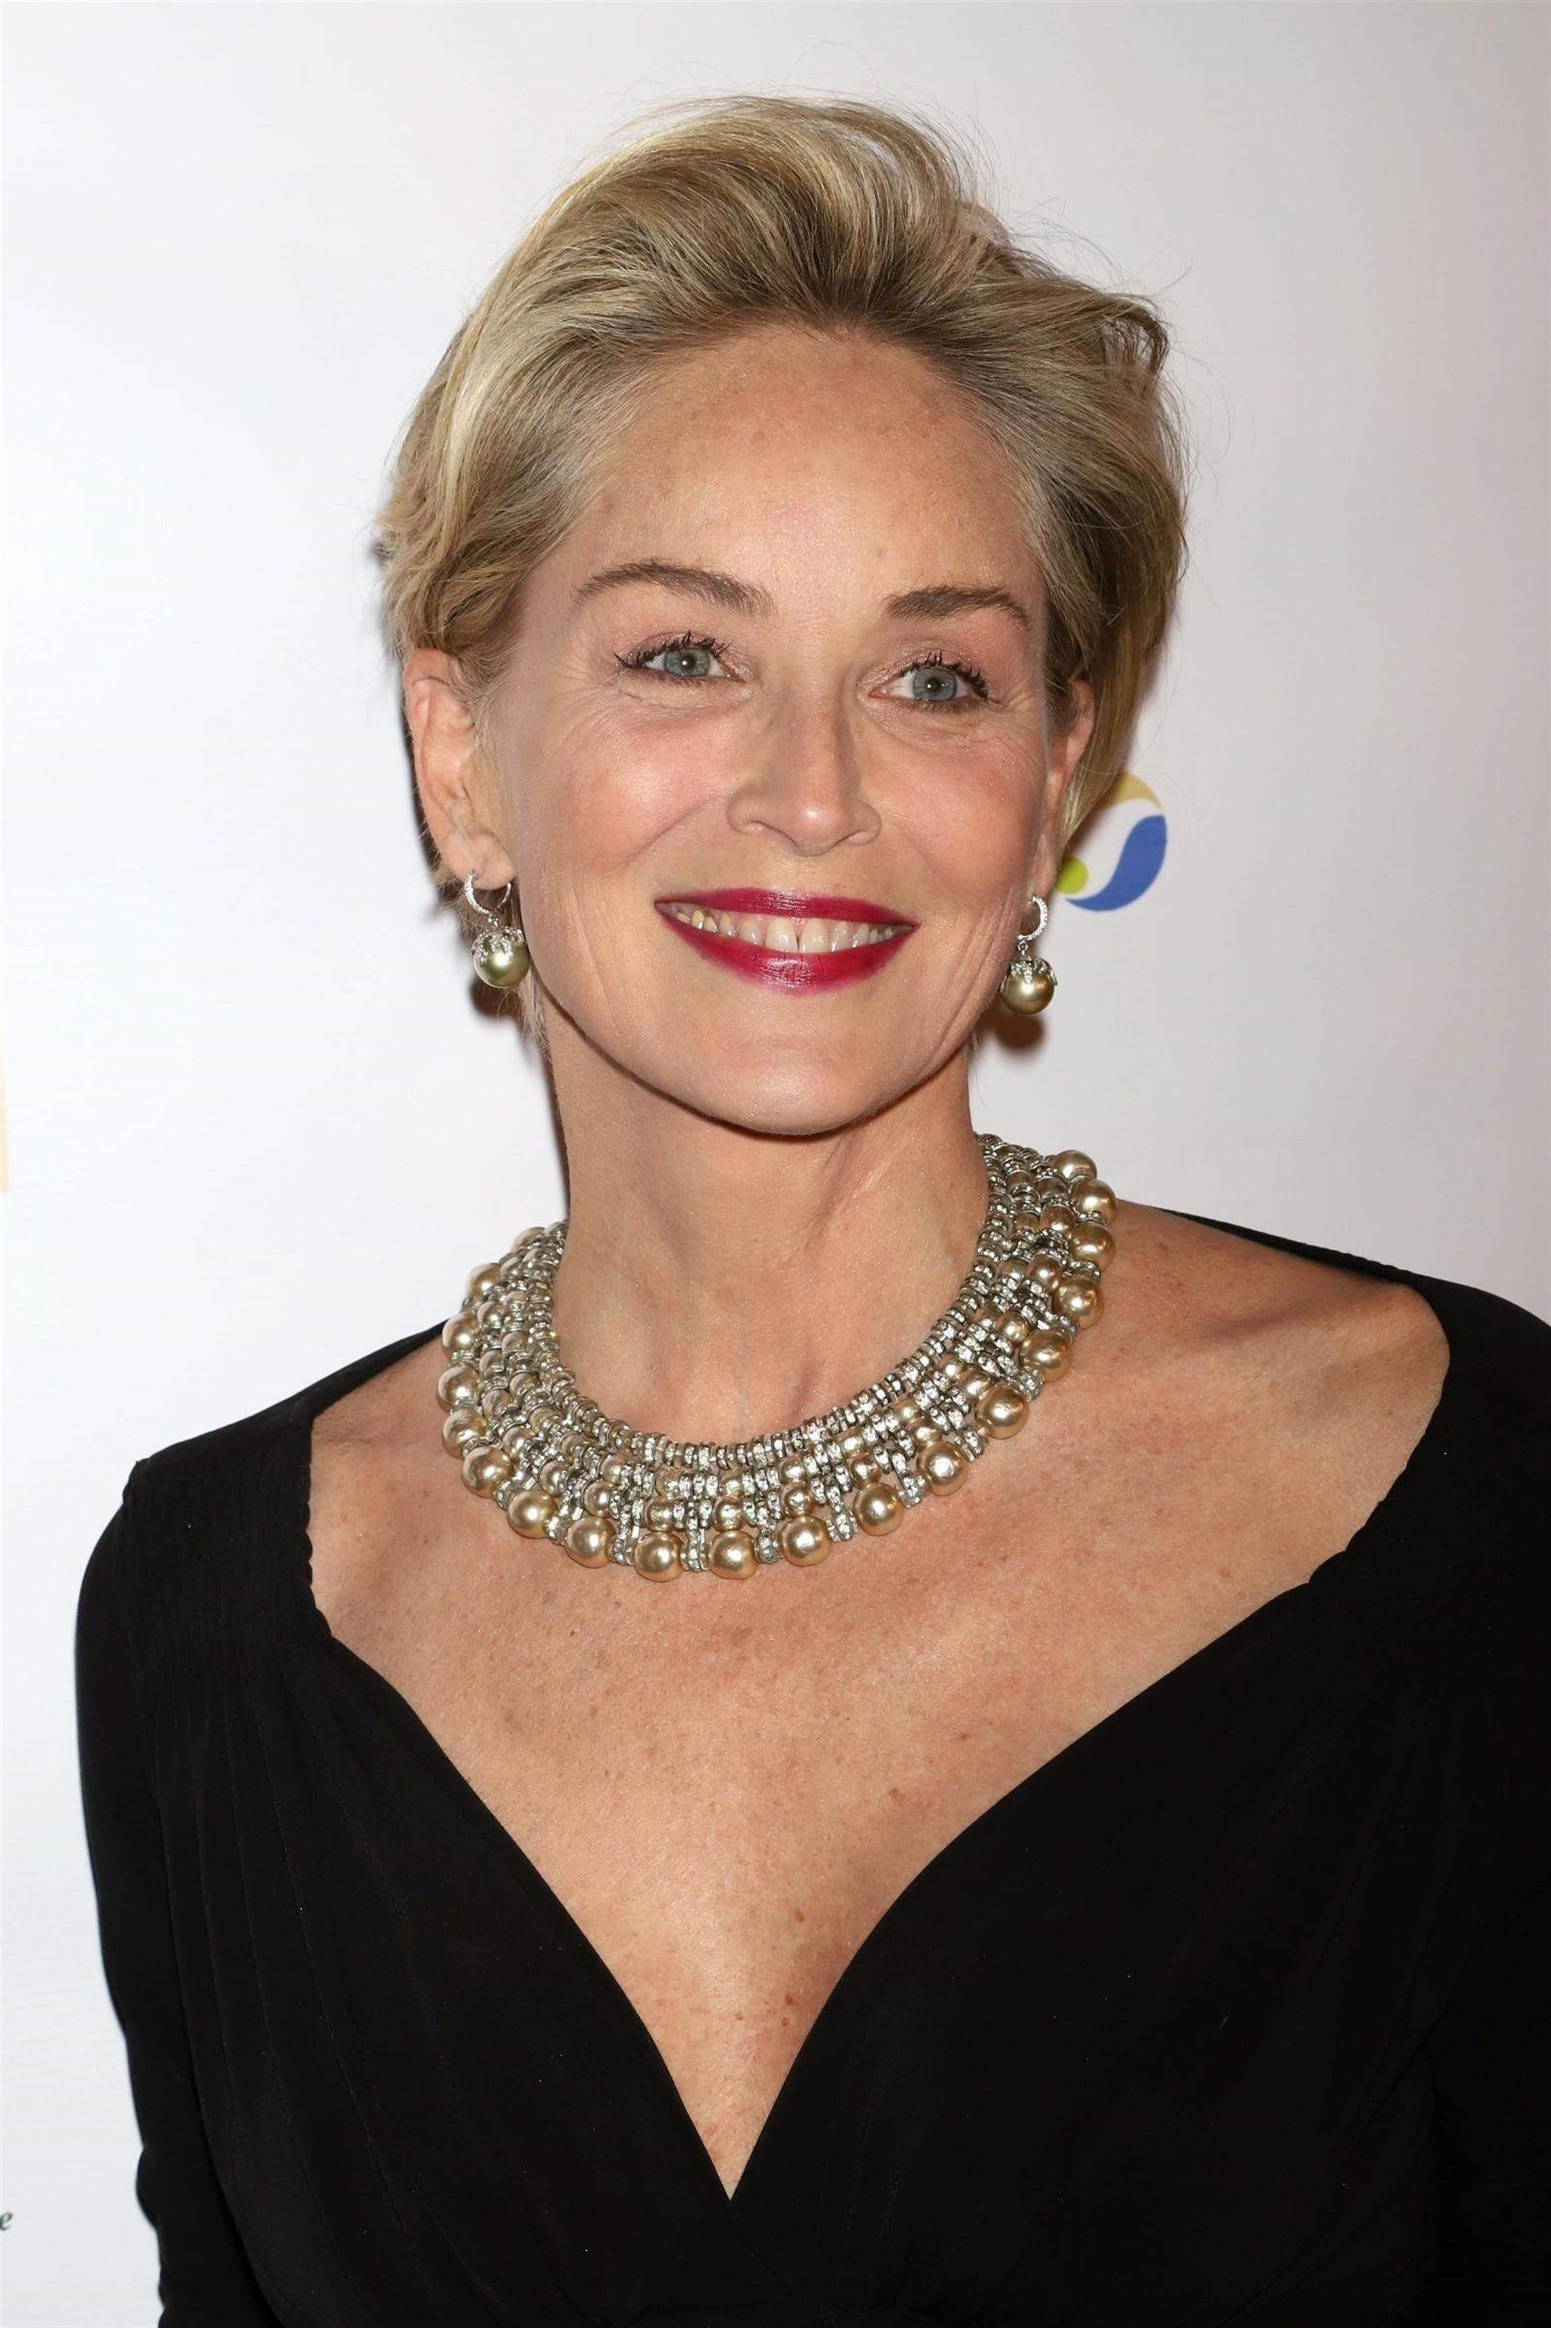 New Short Hair Style Sharoon Stone  Sharon Stone is an actor who is idol to her peers with her short hair despite her advanced age. Years cannot wear it out.